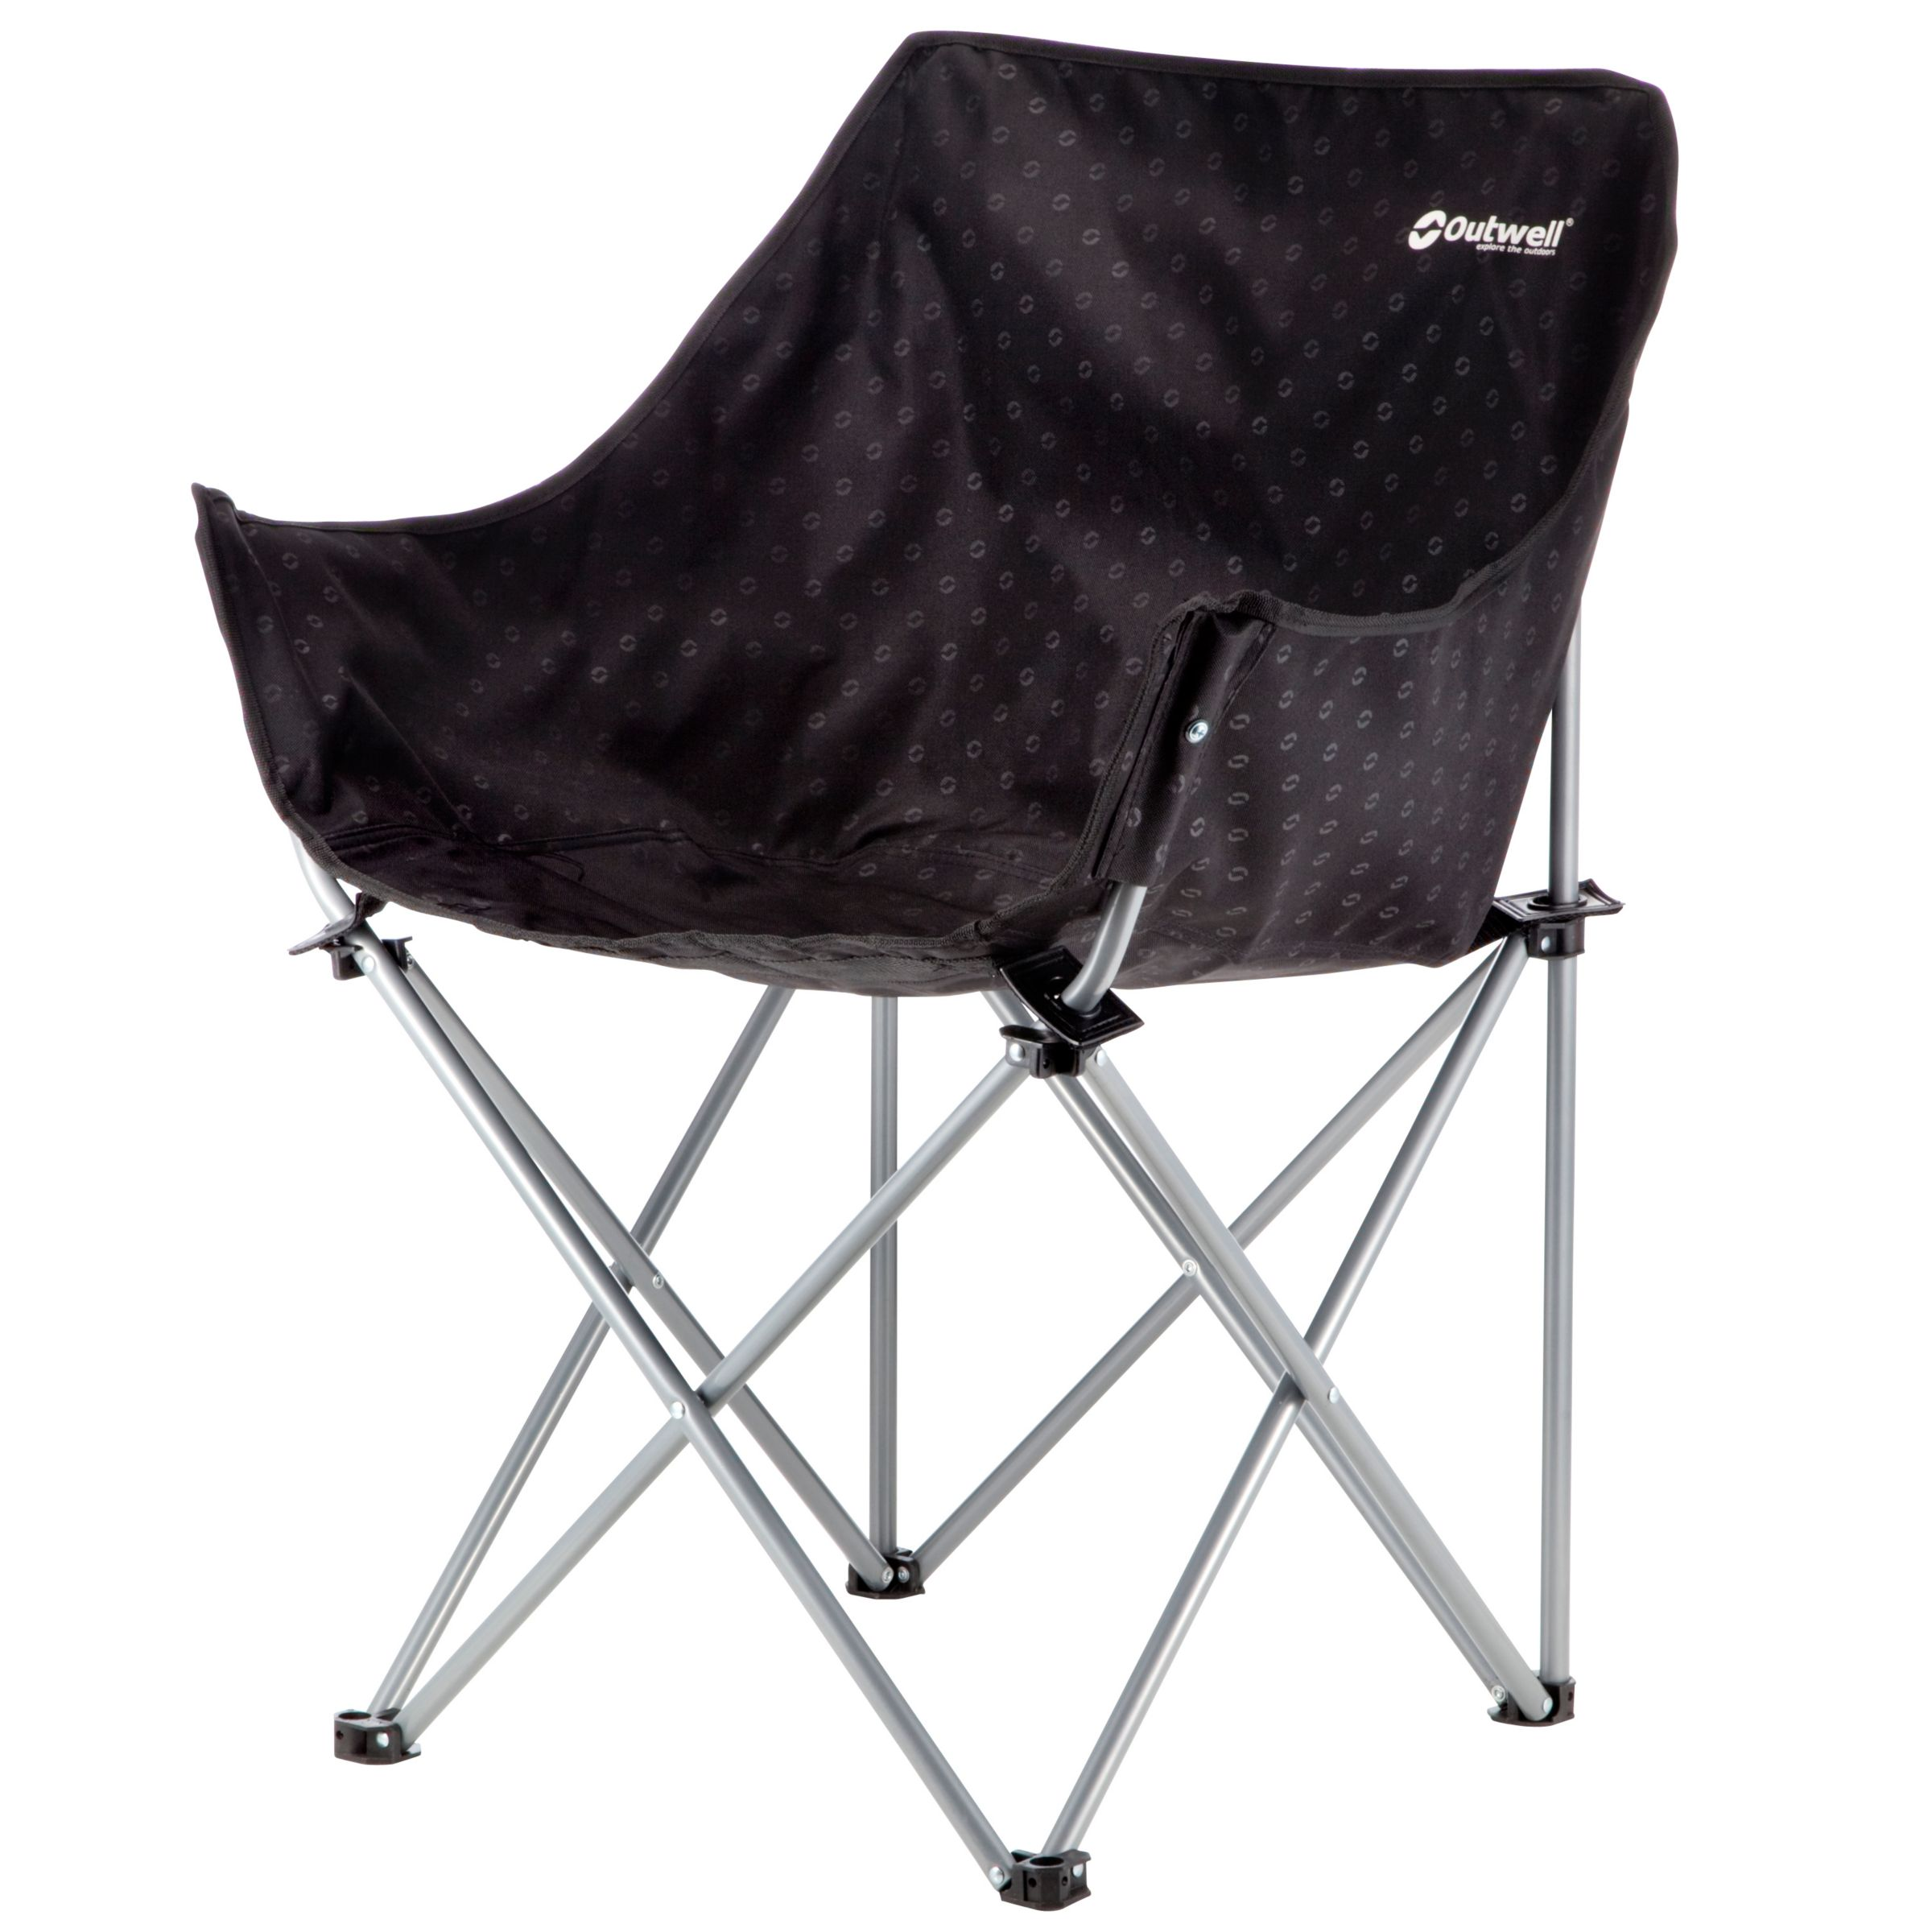 Outwell Outwell Sevilla Chair, Black